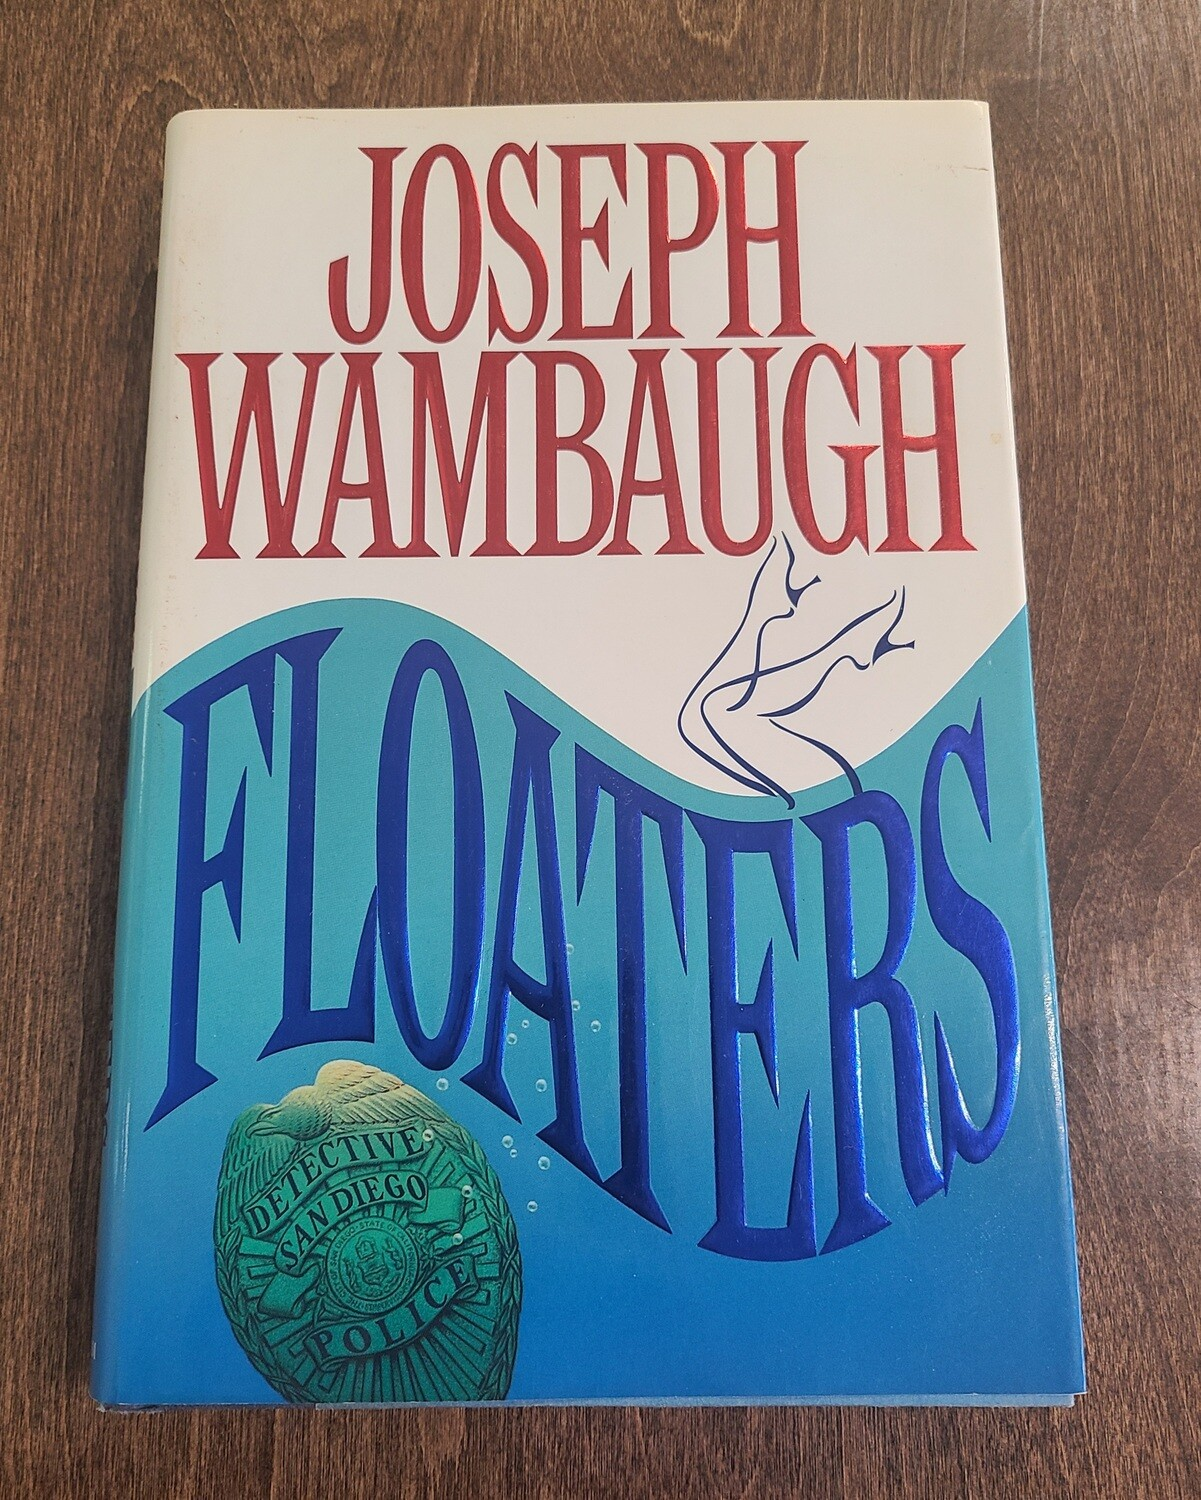 Floaters by Joseph Wambaugh